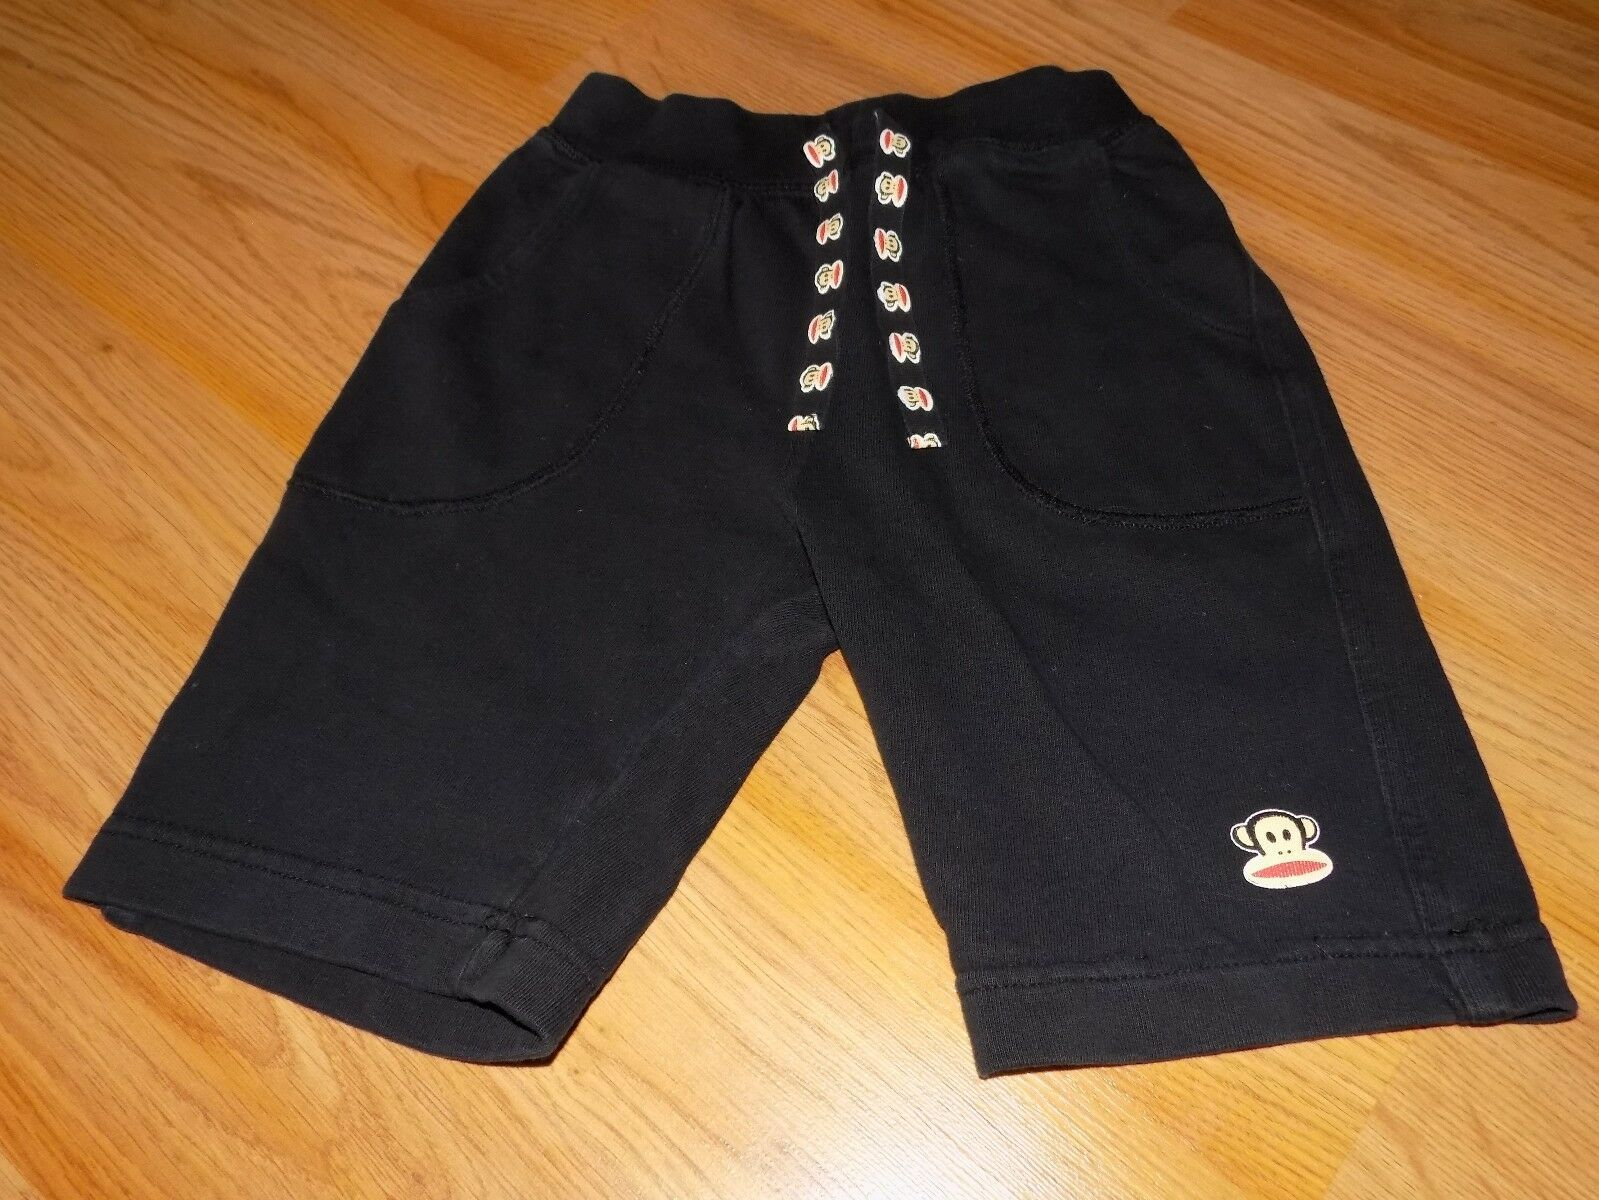 Primary image for Toddler Size 5T Paul Frank Monkey Solid Black Lounge Shorts Knee Length EUC